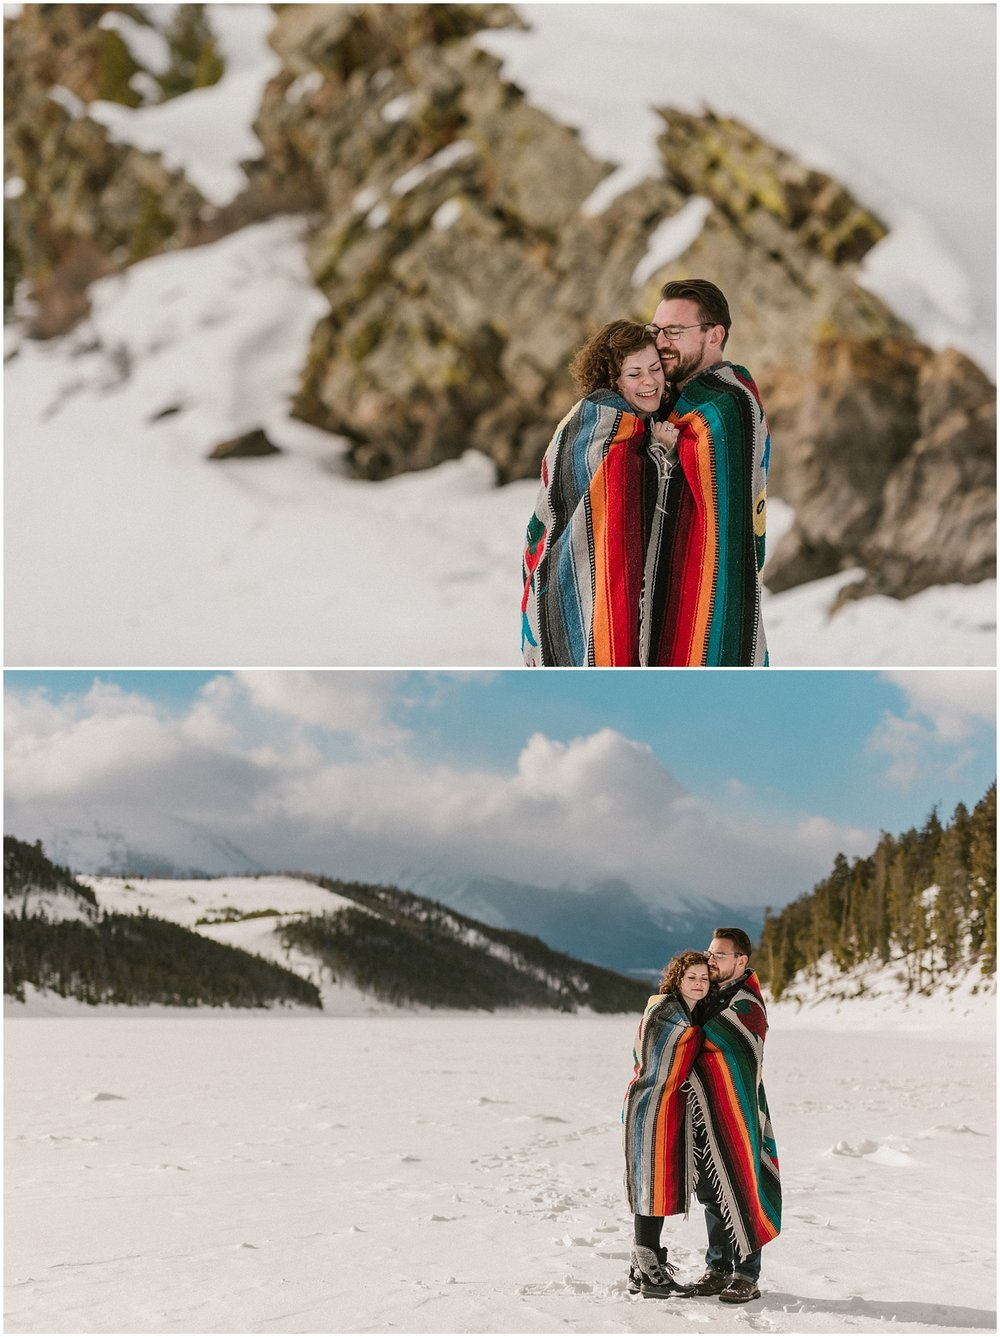 breckenridge-frisco-lake-dillon-colorado-engagement-photos_0020.jpg